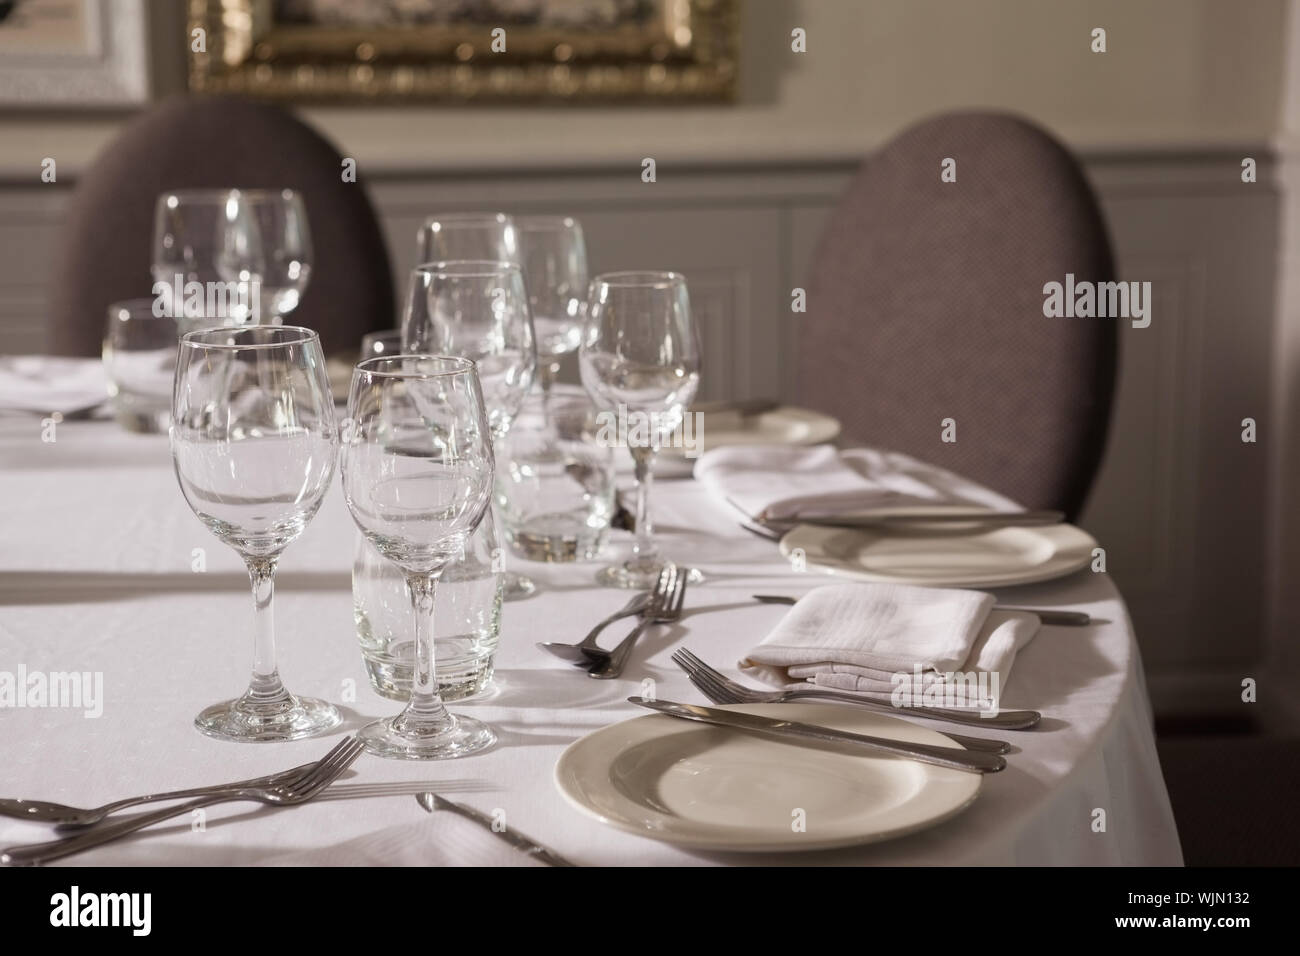 Table Set For Dinner Service In A Fancy Restaurant Stock Photo Alamy